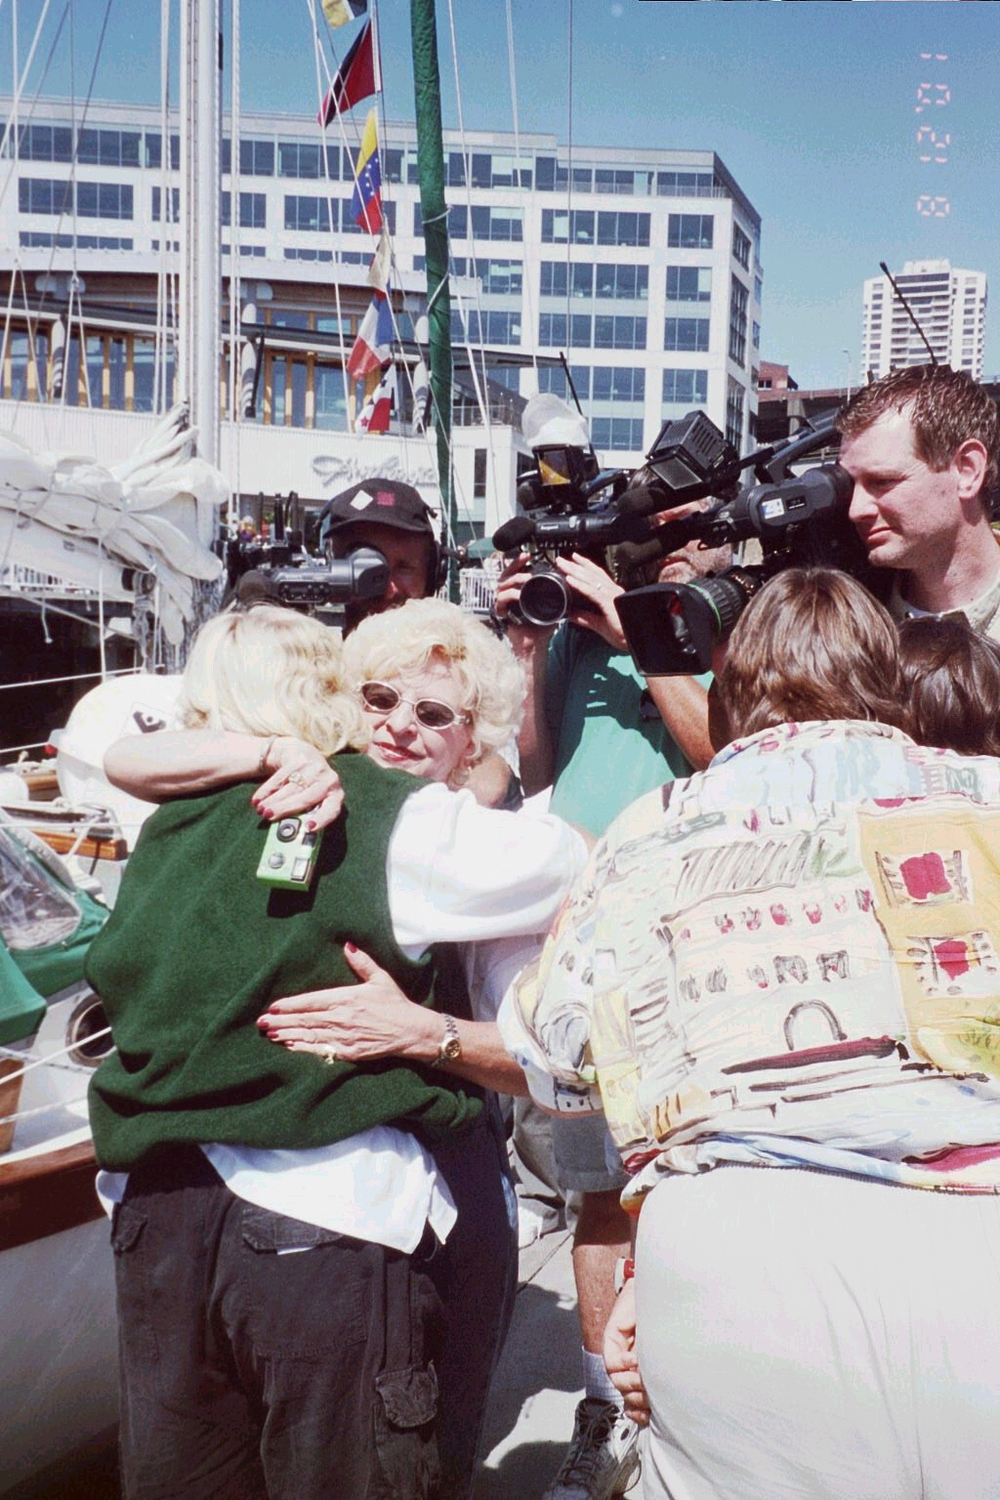 TV news media met us in Seattle at the end of the circumnavigation. So did my family from Oklahoma.